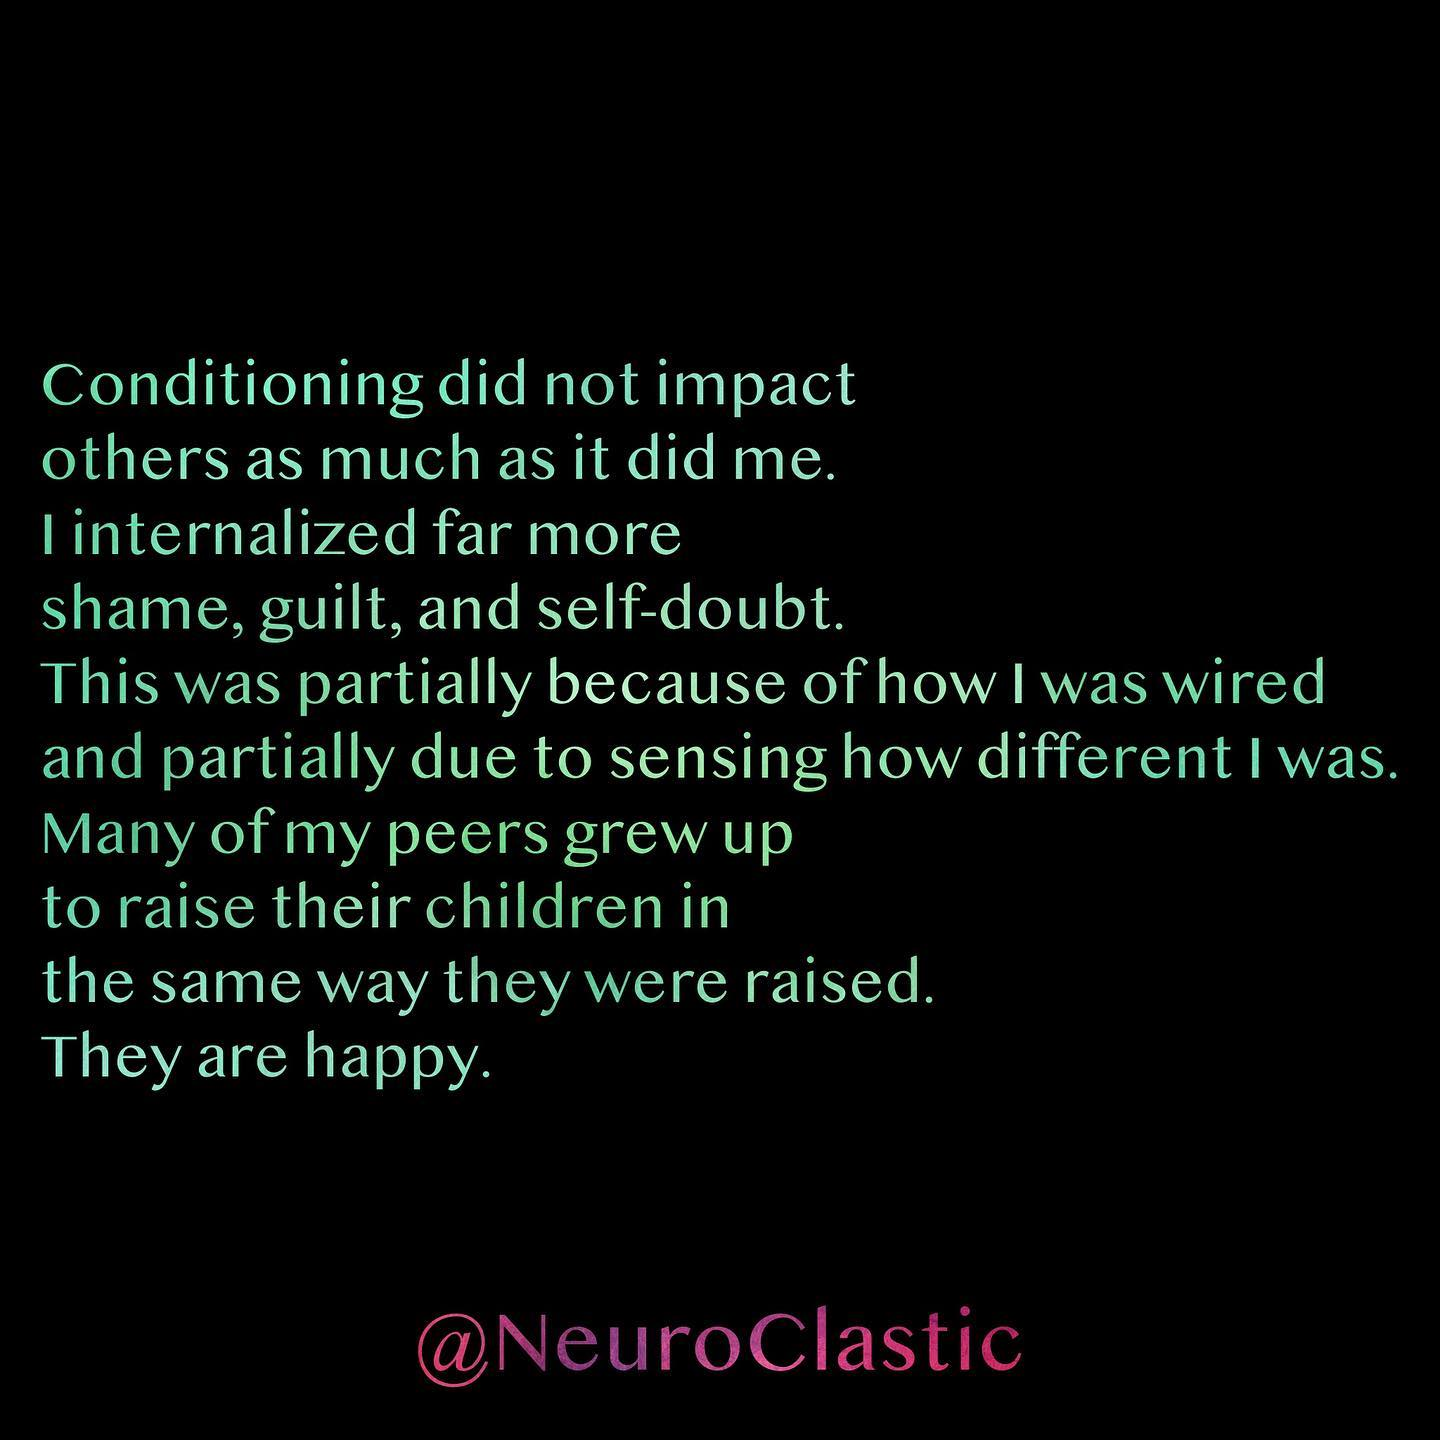 Conditioning did not impact others as much as it did me. I internalized far more shame, guilt, and self-doubt. This was partially because of how I was wired and partially due to sensing how different I was. Many of my peers grew up to raise their children in the same way they were raised. They are happy. @NeuroClastic